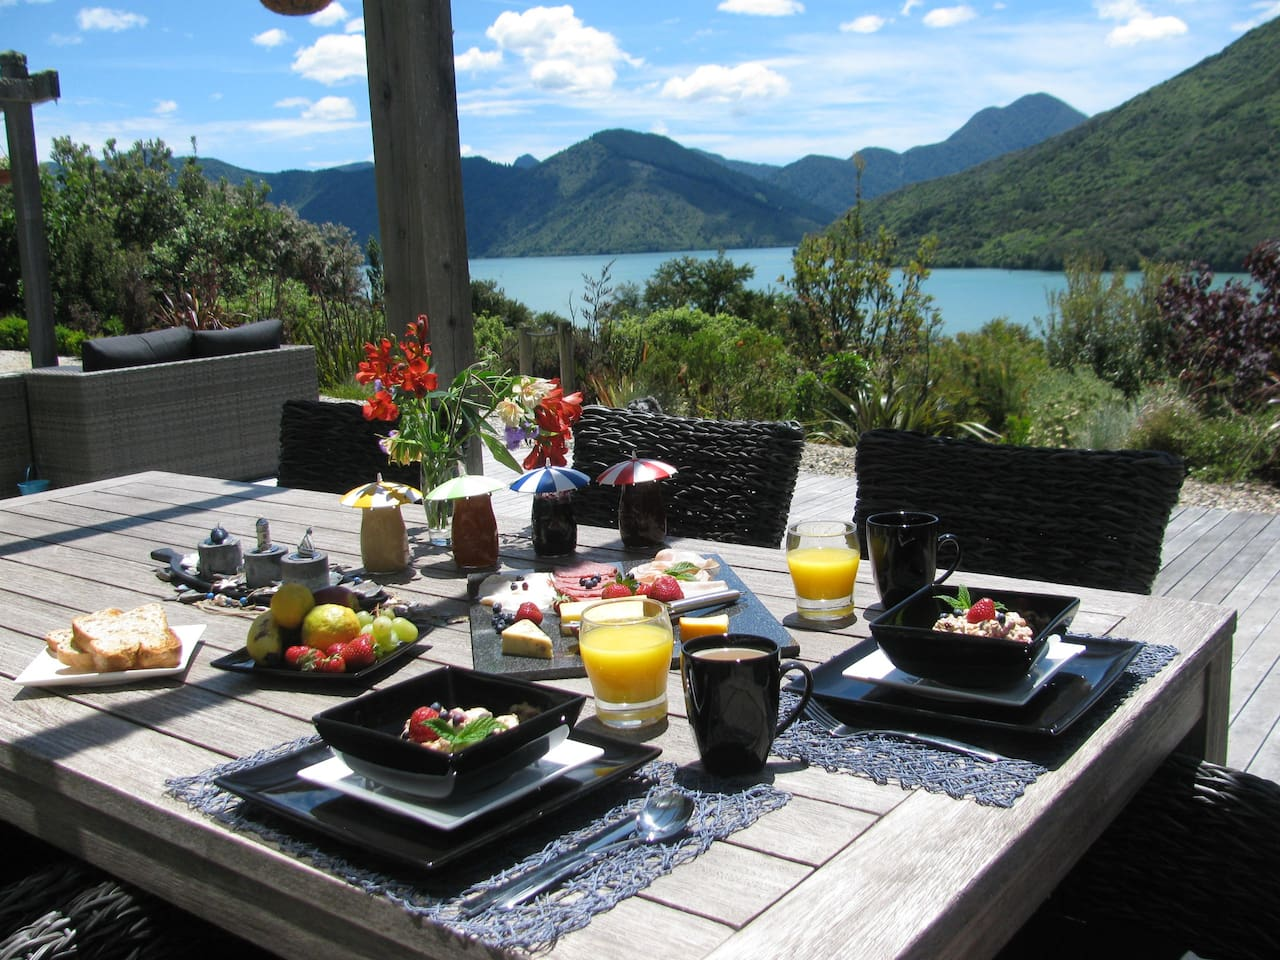 comprehensive breakfast on the patio with stunning seaview